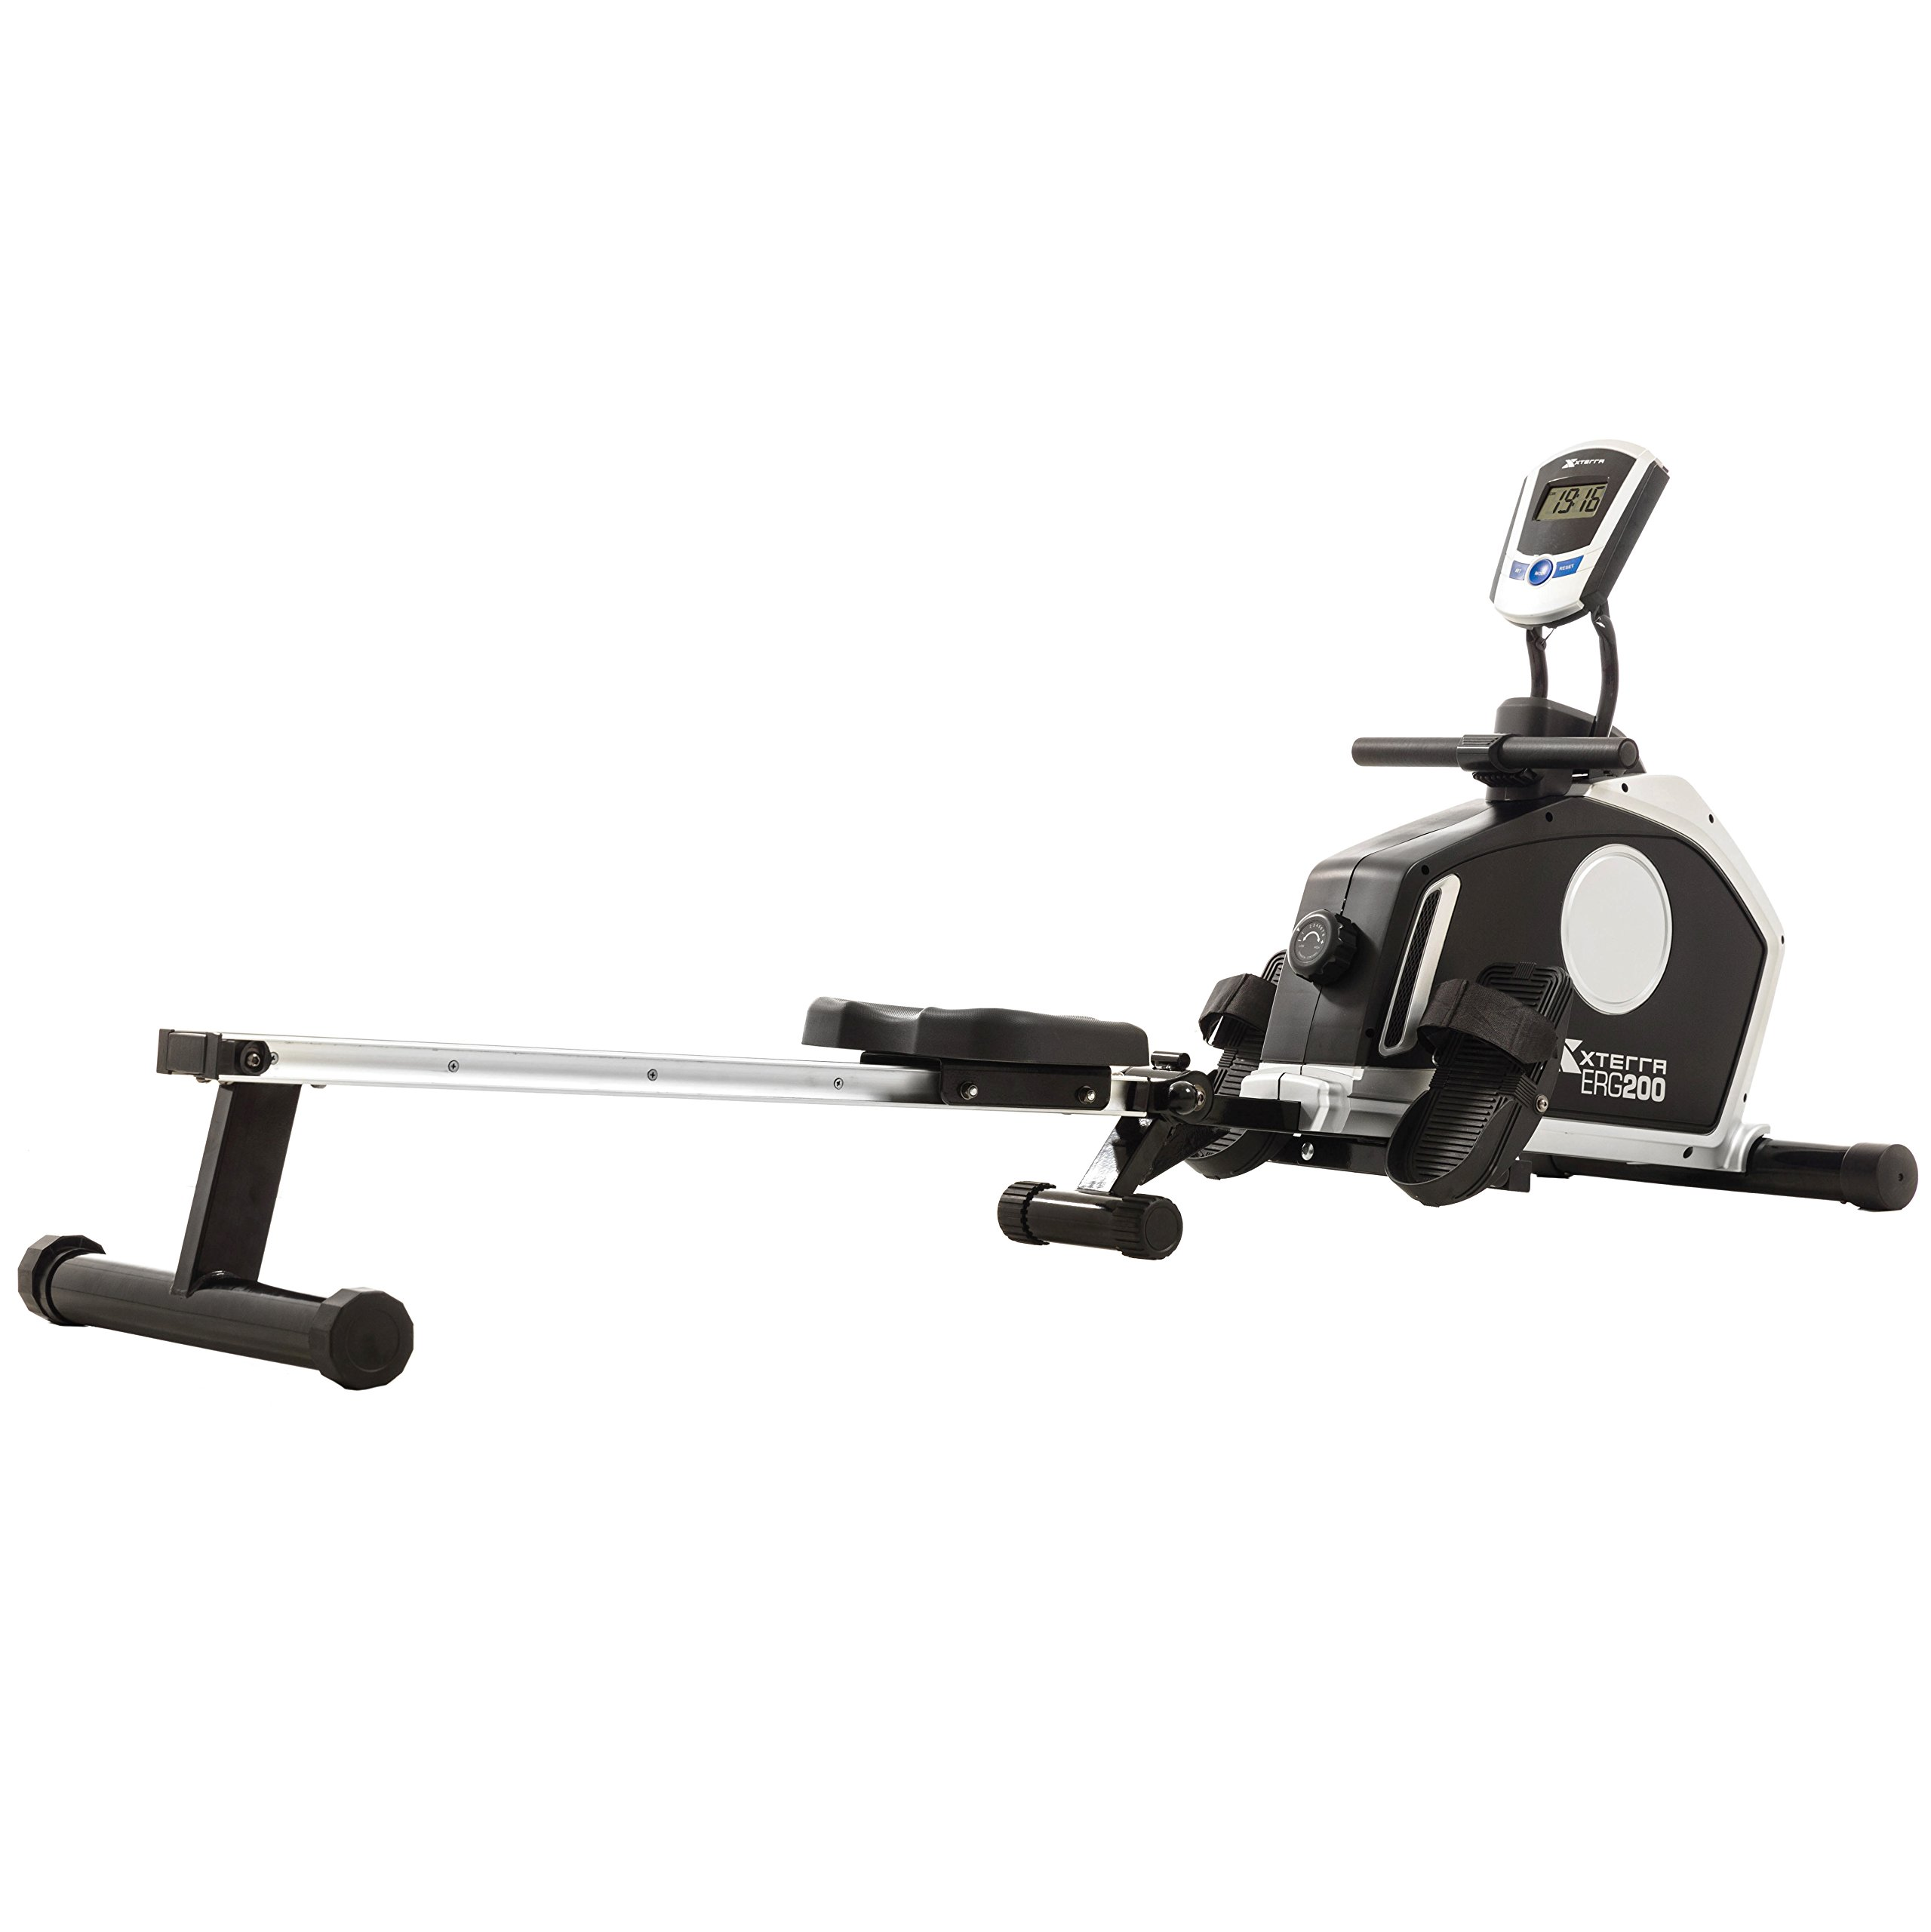 XTERRA Fitness ERG200 Folding Magnetic Resistance Rower by XTERRA Fitness (Image #1)